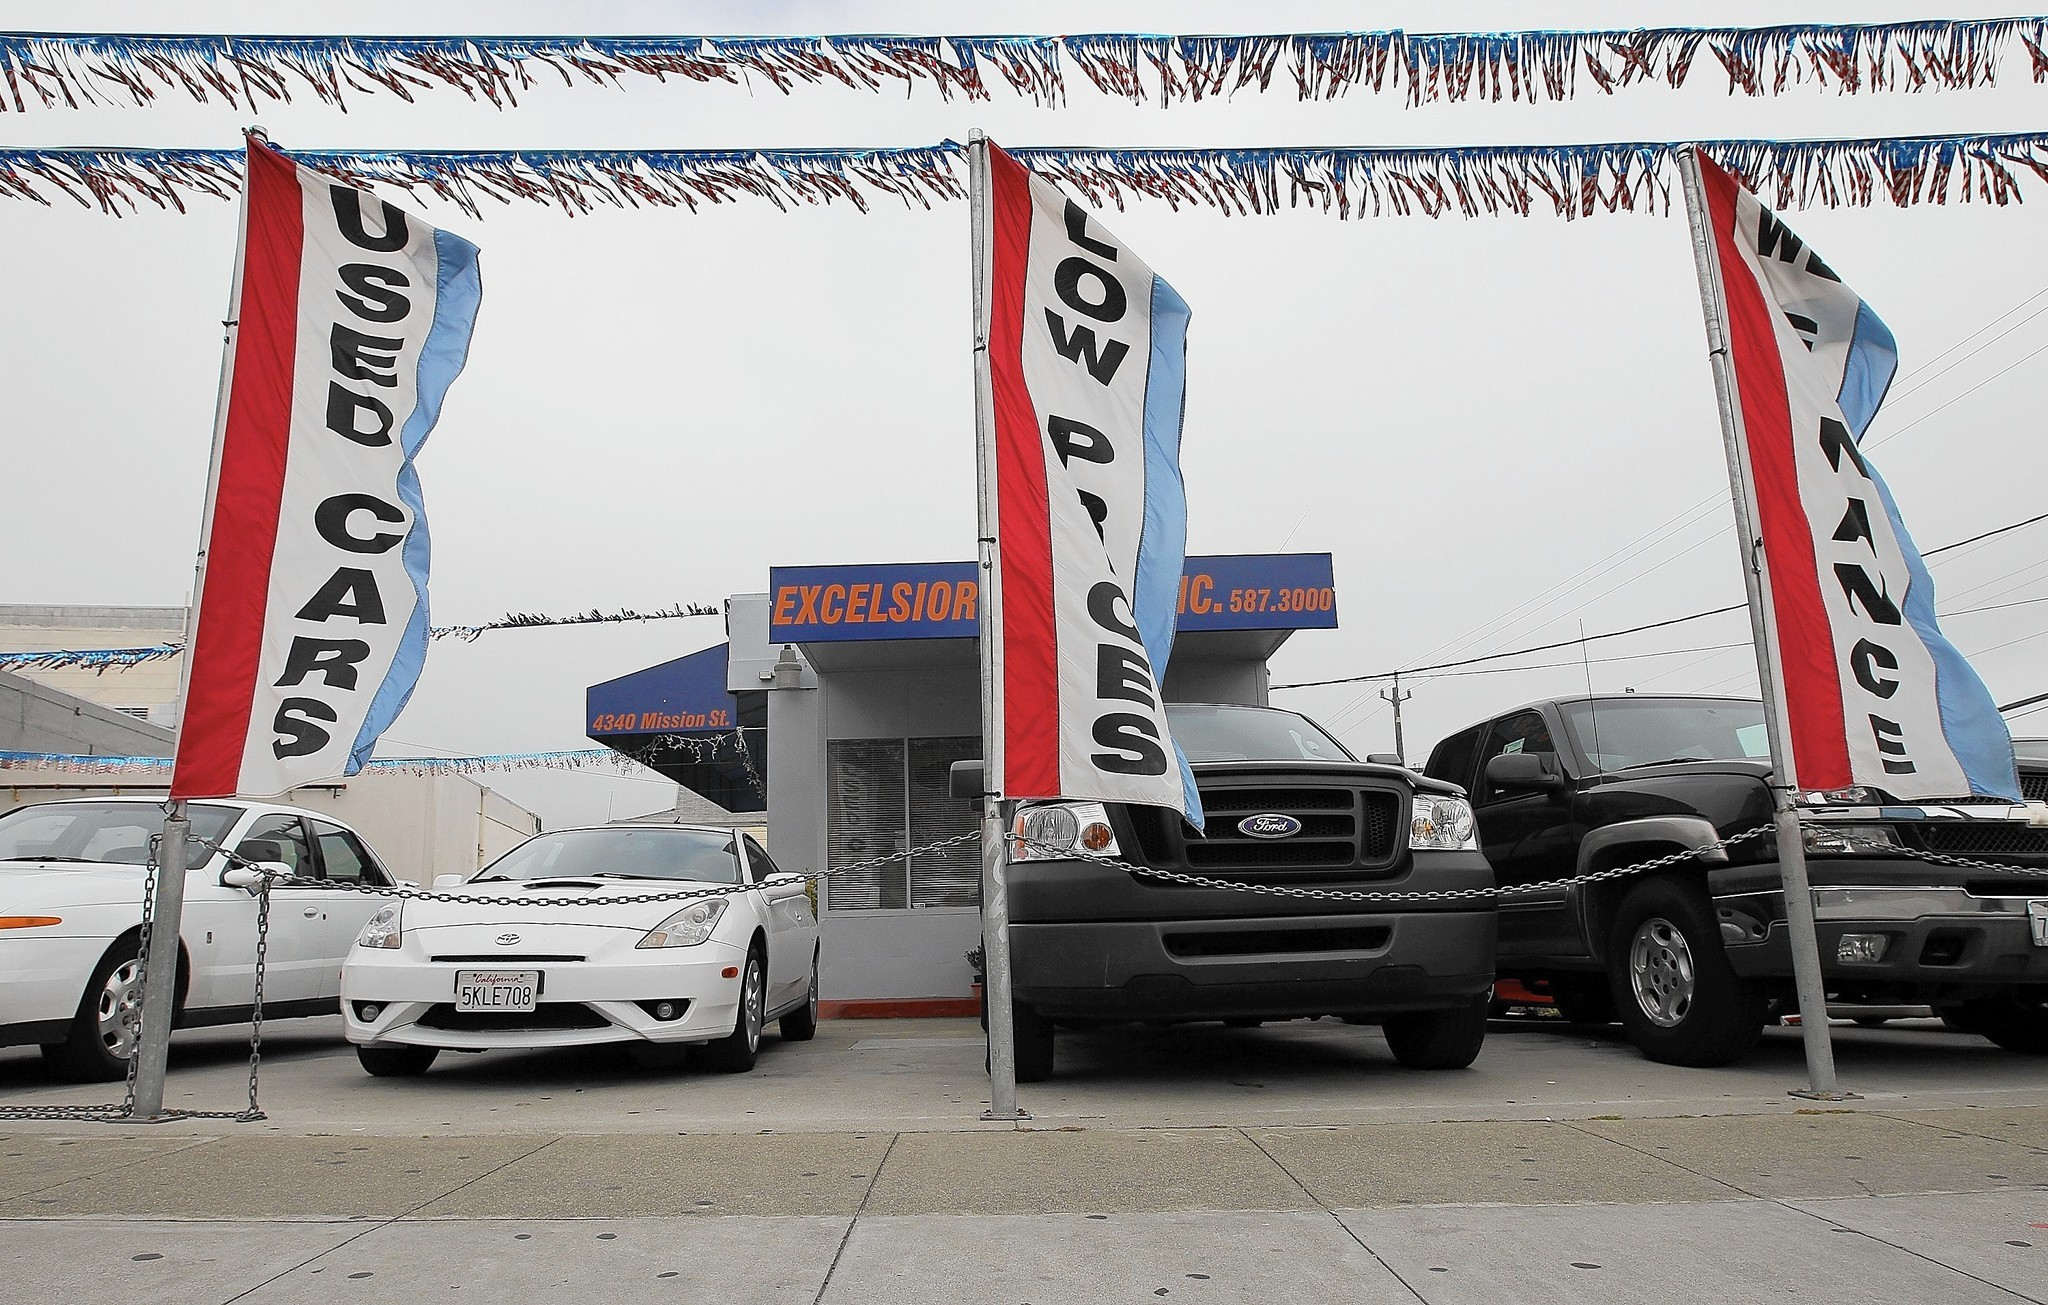 Used vehicle glut causing drop in prices - Chicago Tribune